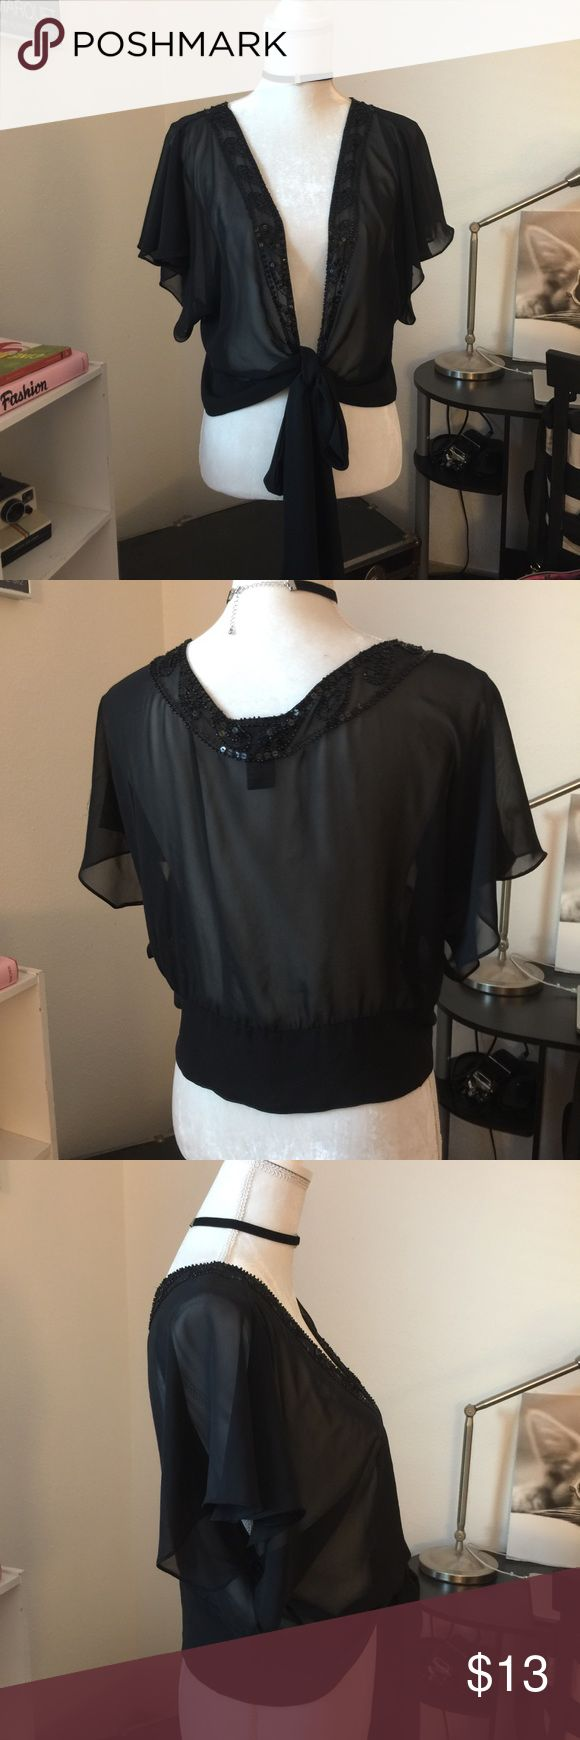 Lane Bryant Sheer Shawl/Top Lovely black Sheer Shawl with sequins, flowy sleeves. This would be great over a dress or even just a casual shirt or blouse. This is a super versatile piece. Never worn. Great condition. It doesn't matter if you're a size M or XL this would fit and look super cool. Lane Bryant Jackets & Coats